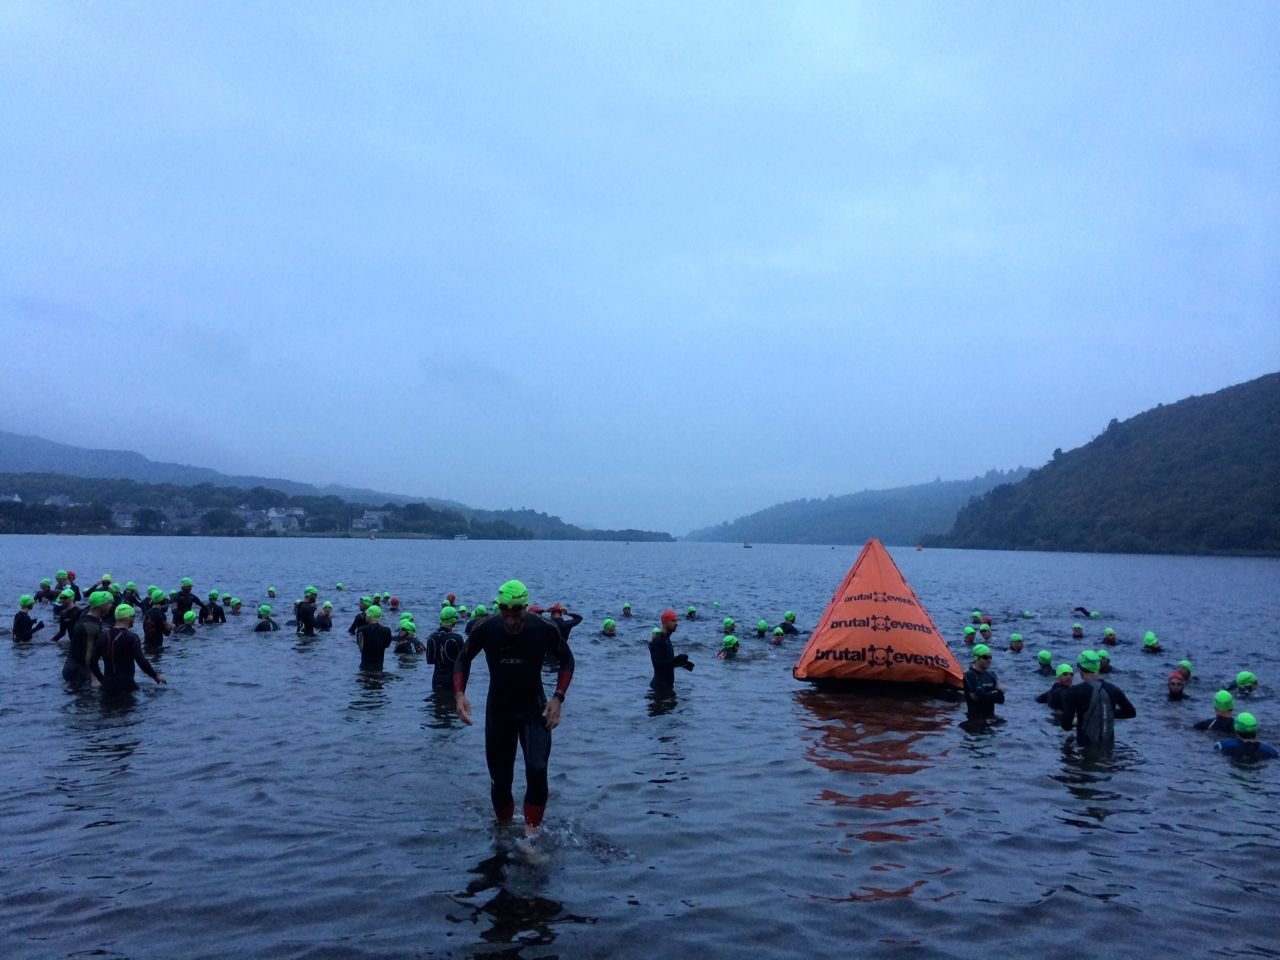 Athletes enter the water for the Brutal Extreme Triathlon